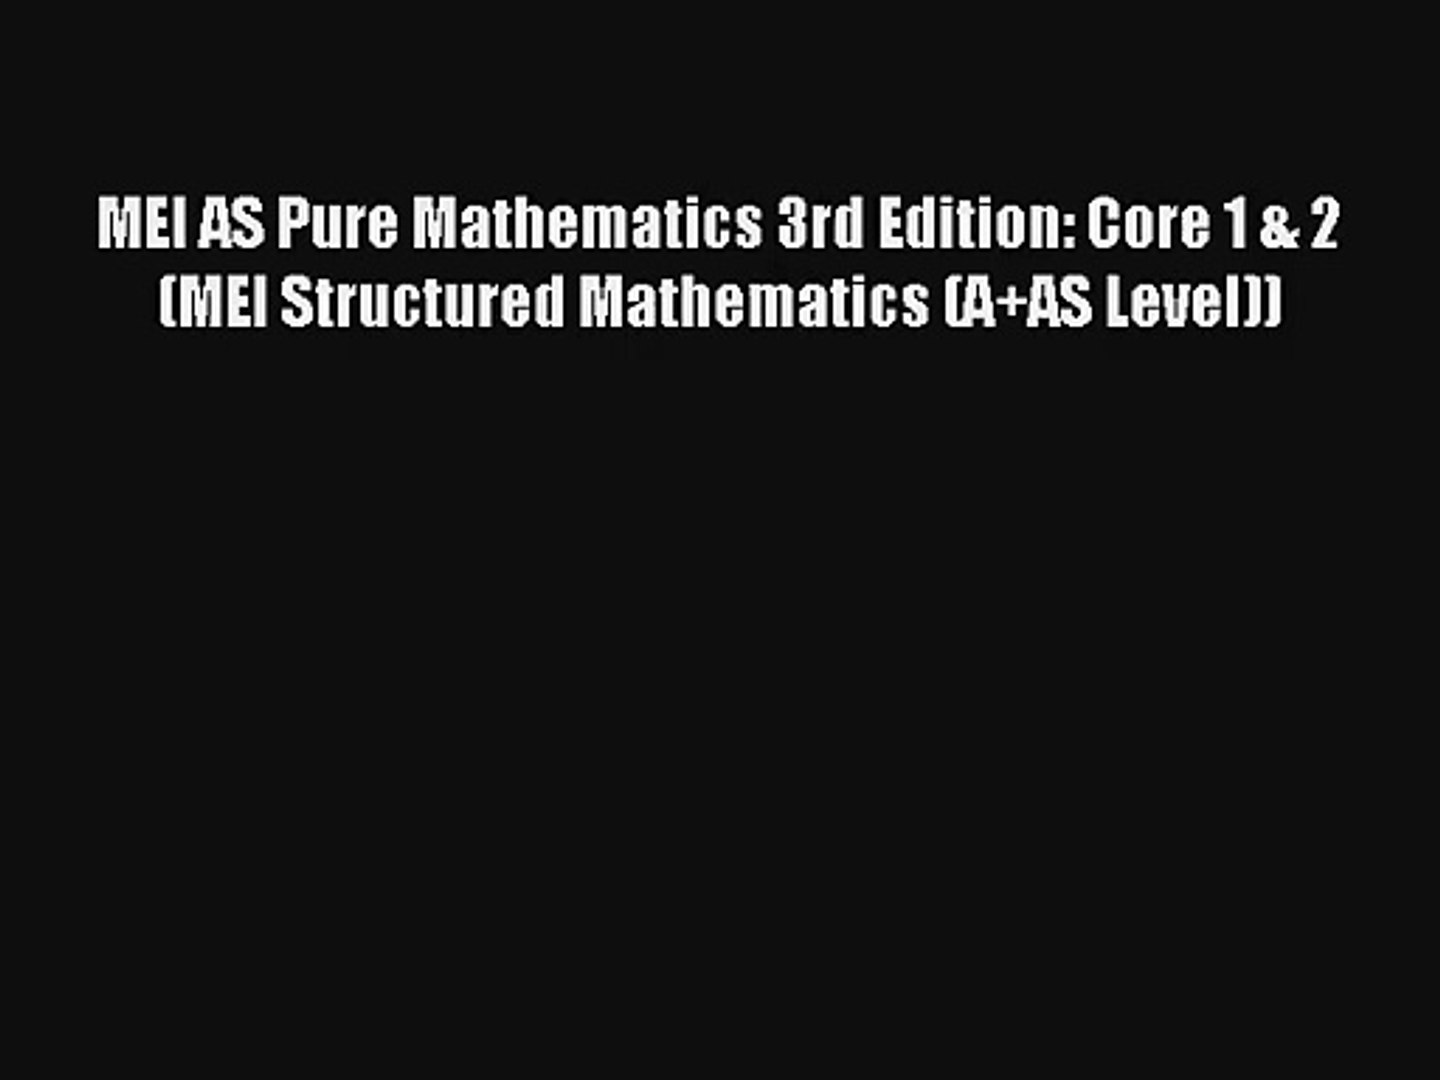 MEI AS Pure Mathematics 3rd Edition: Core 1 & 2 (MEI Structured Mathematics  (A+AS Level)) [Download]